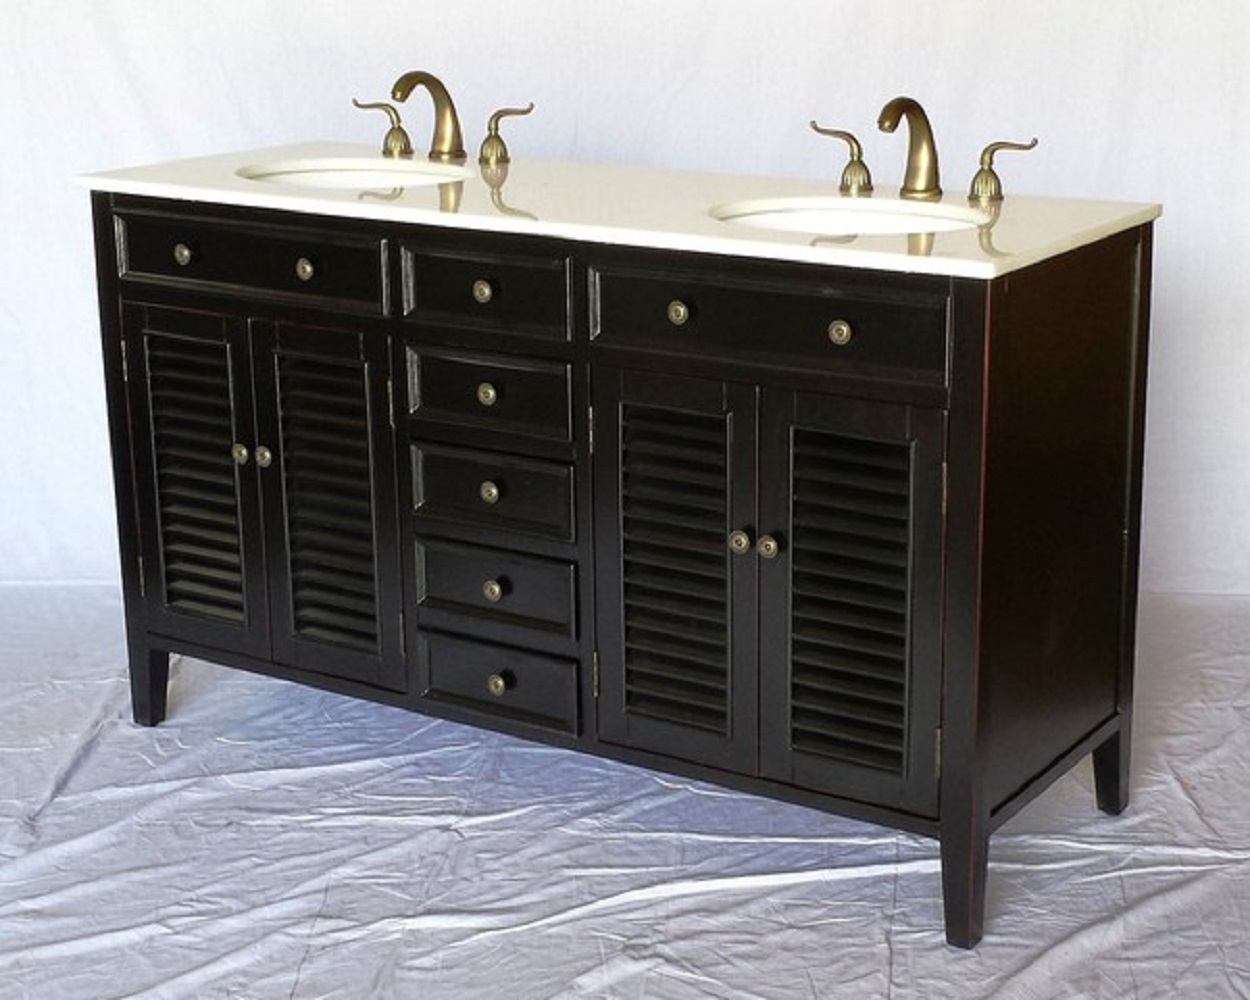 60 Inch Espresso Louvered Bathroom Vanity With Crystal White Marble Top 60 Wx21 Dx35 H S112860b